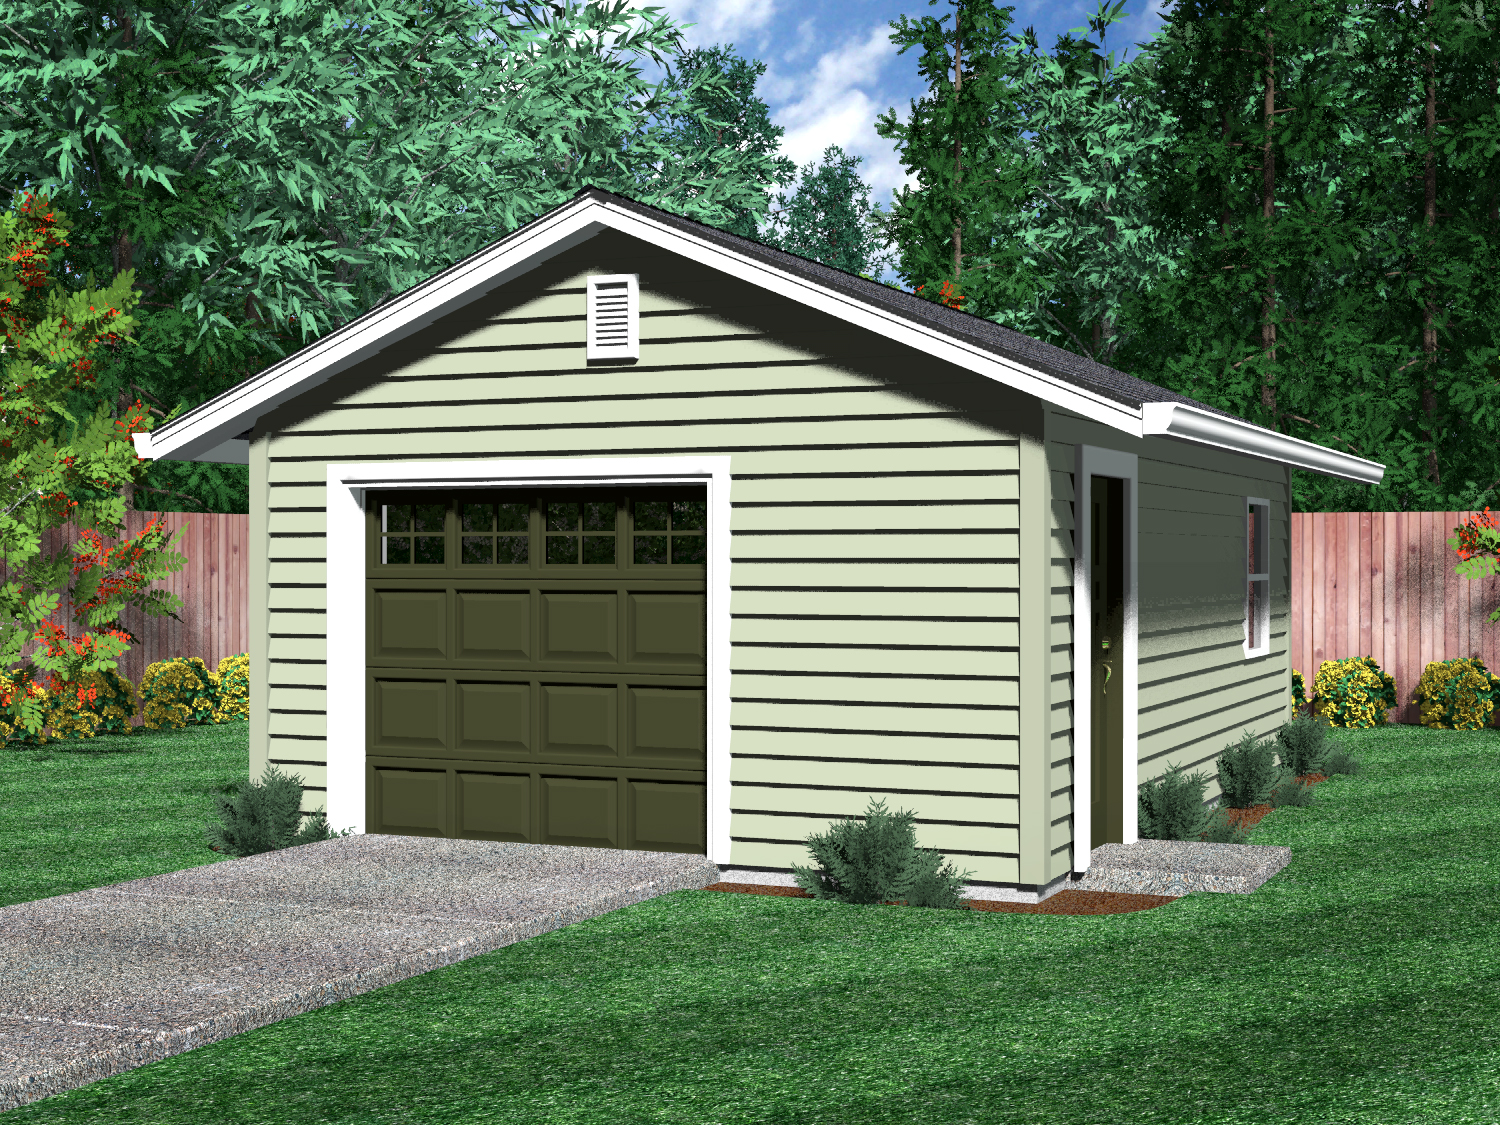 Detached garages for 1 car garage cost